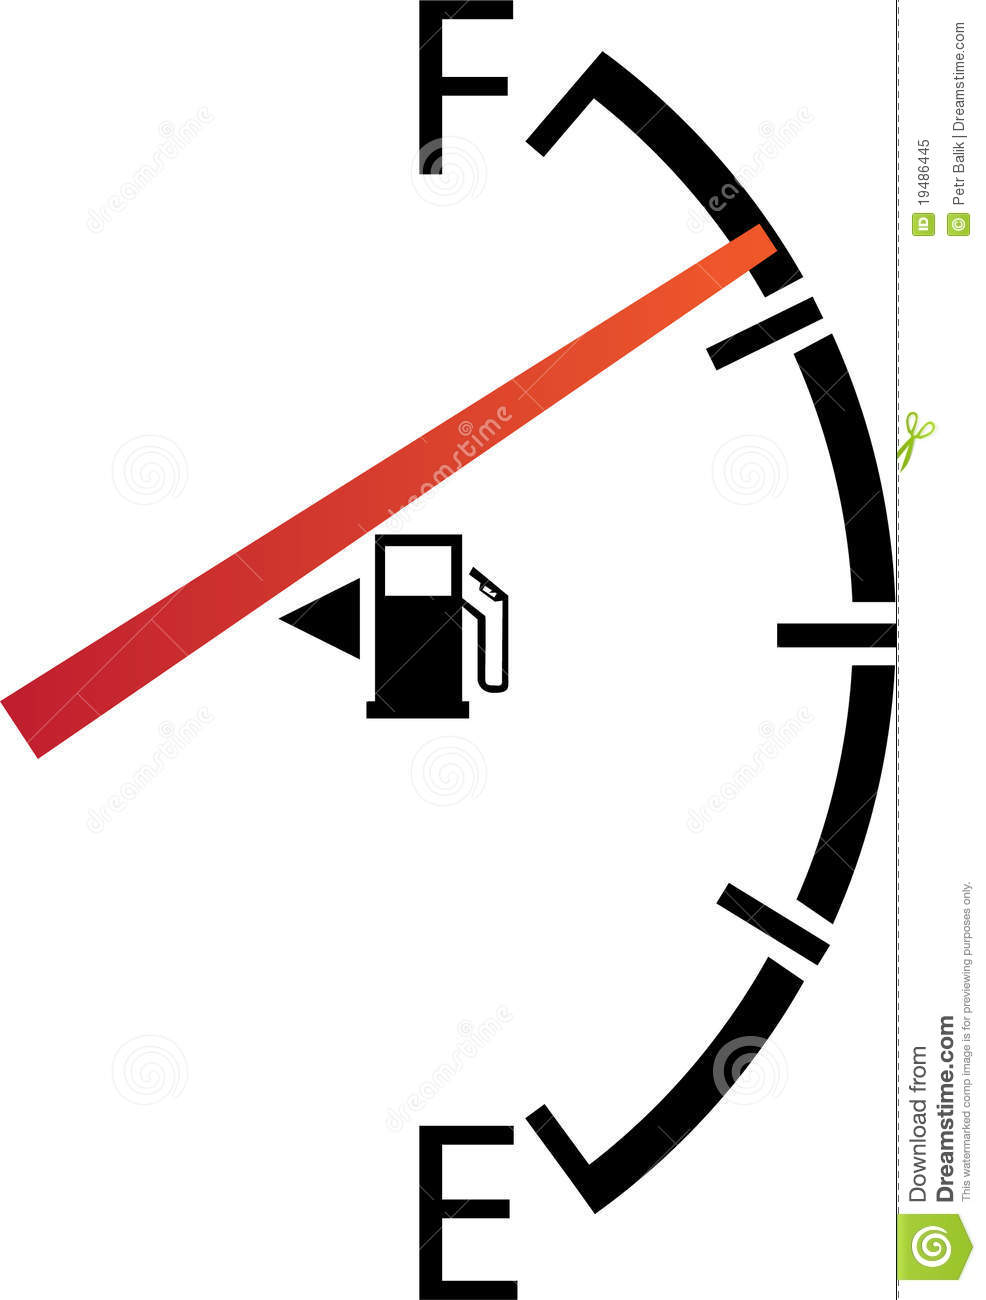 Low Fuel Gauge furthermore V E X as well O Fuel Gauge Empty Facebook besides Kegco in addition Jb Thursblog No More Toilet Paper Again X. on empty gas gauge